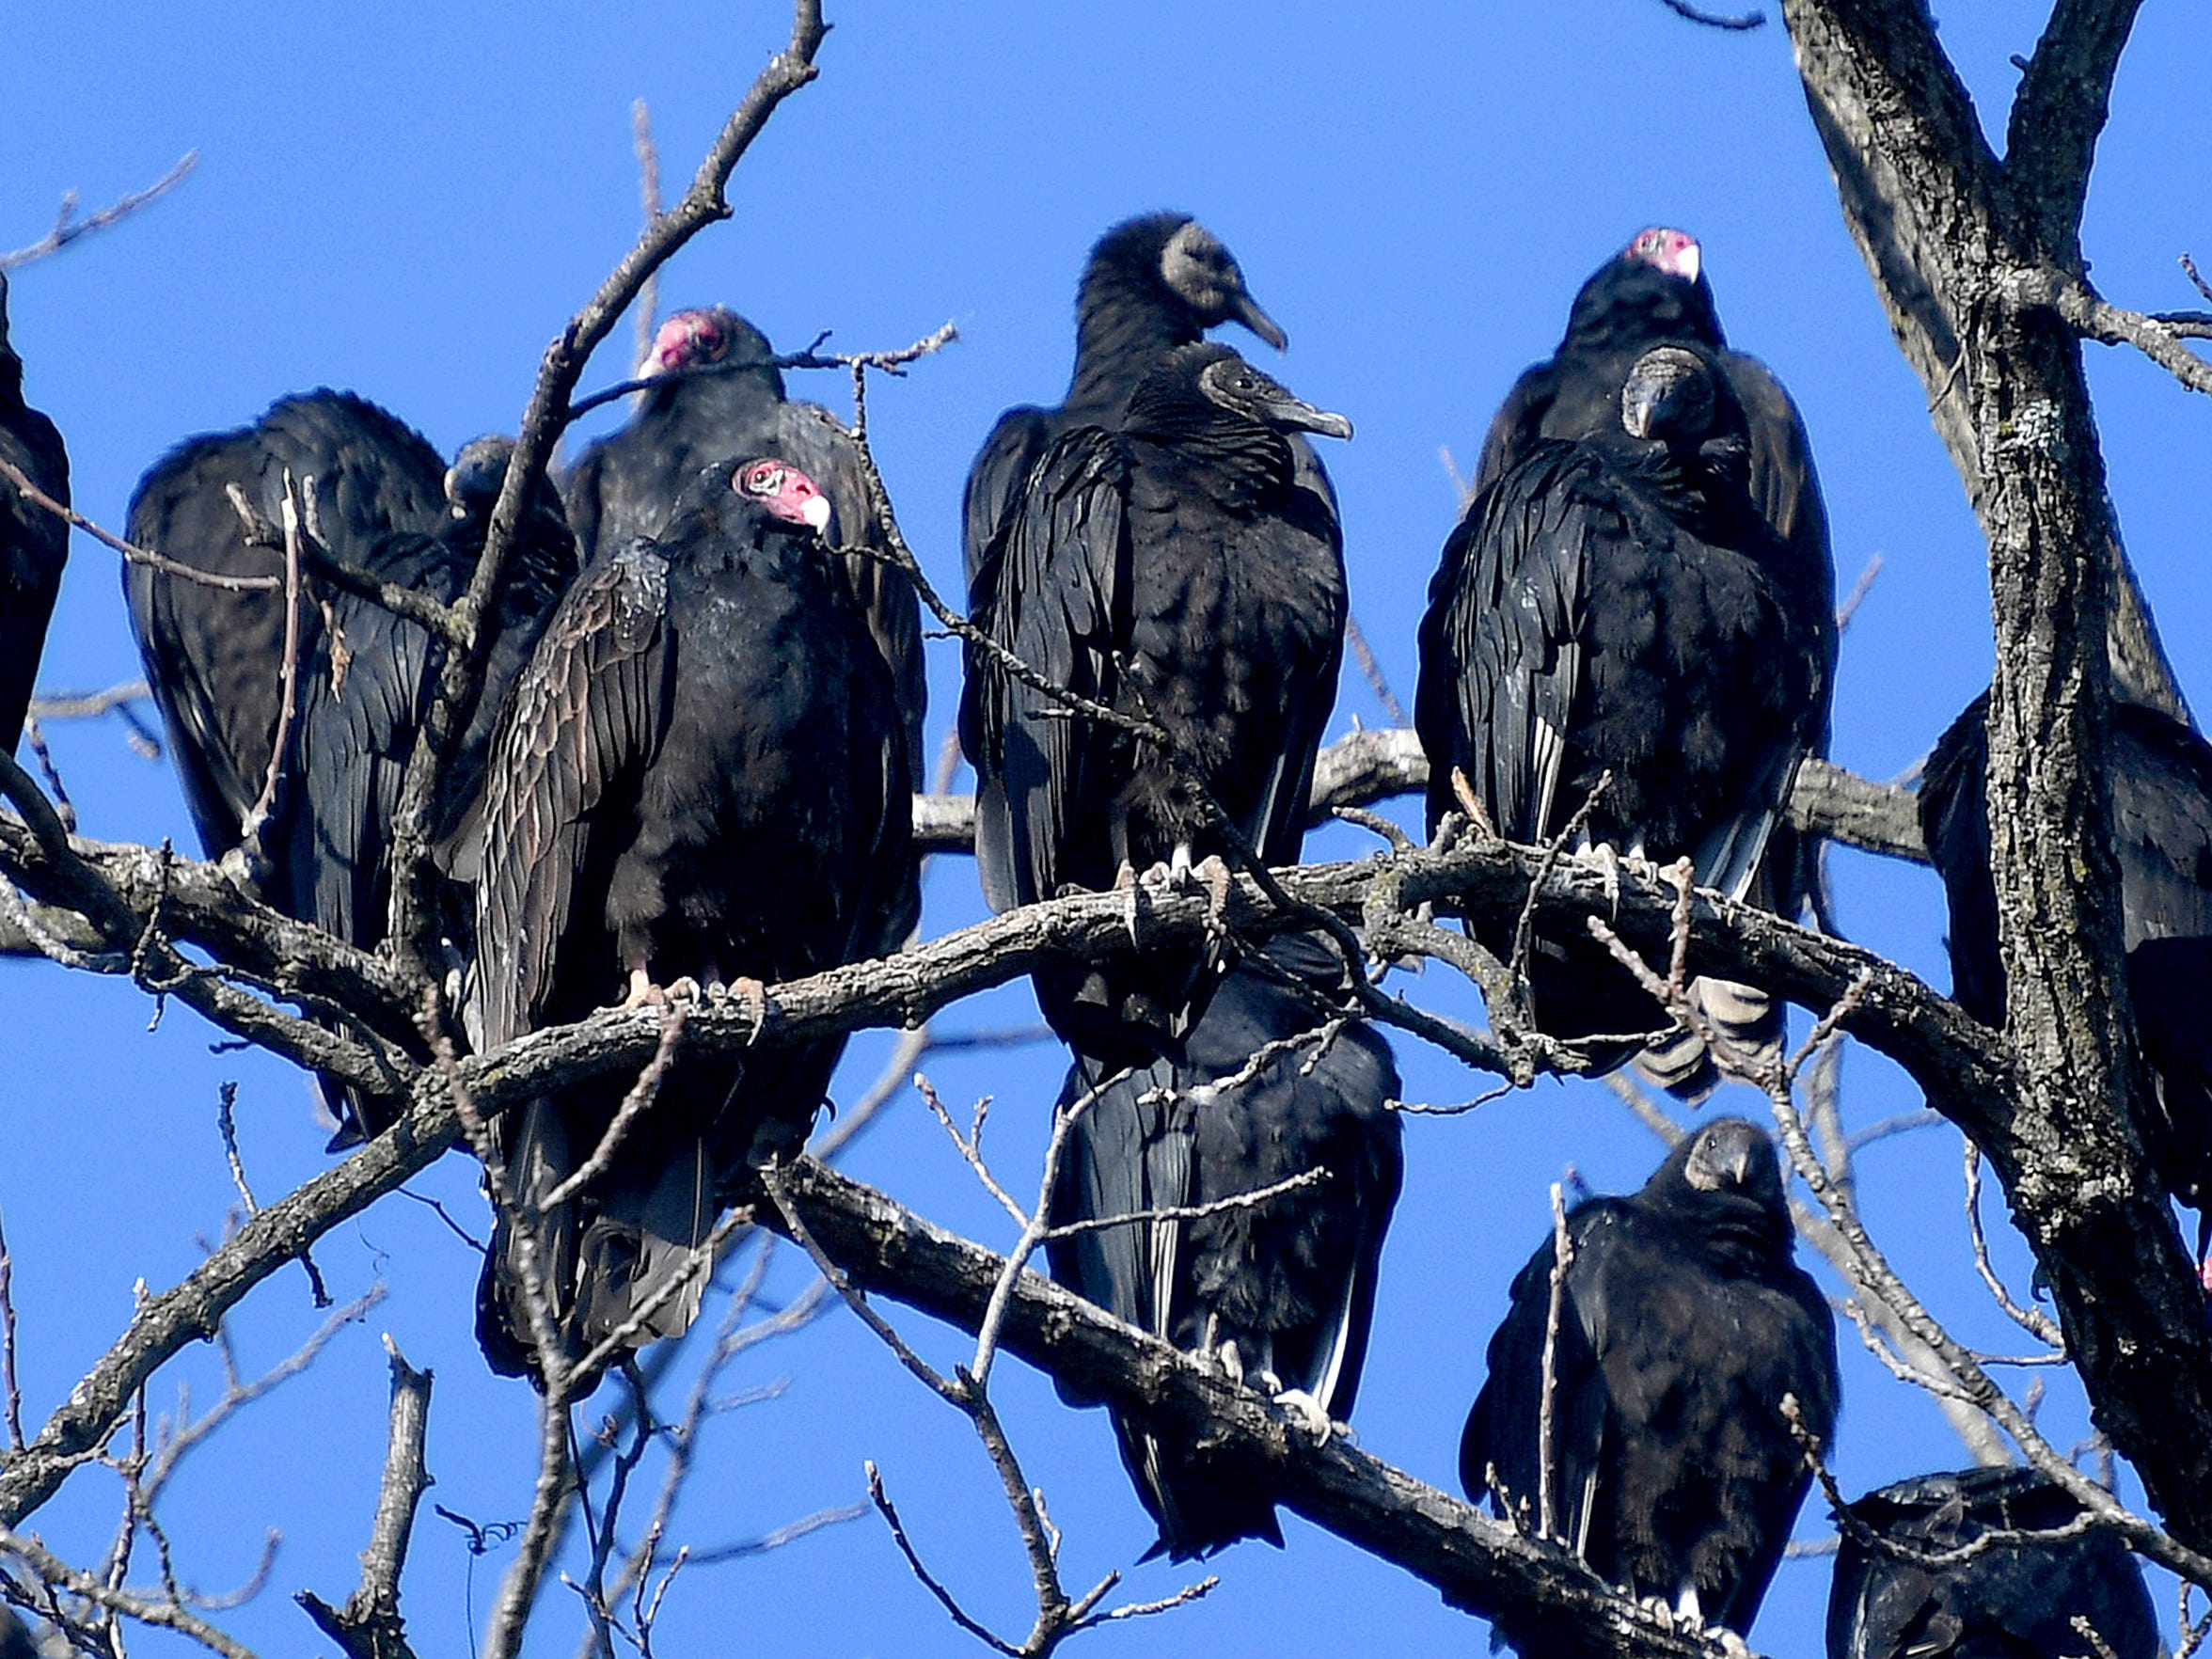 Black vultures and turkey vultures share space as they roost together in the same trees, visible from Fillmore Street in Staunton on Thursday morning, Dec. 19, 2018.